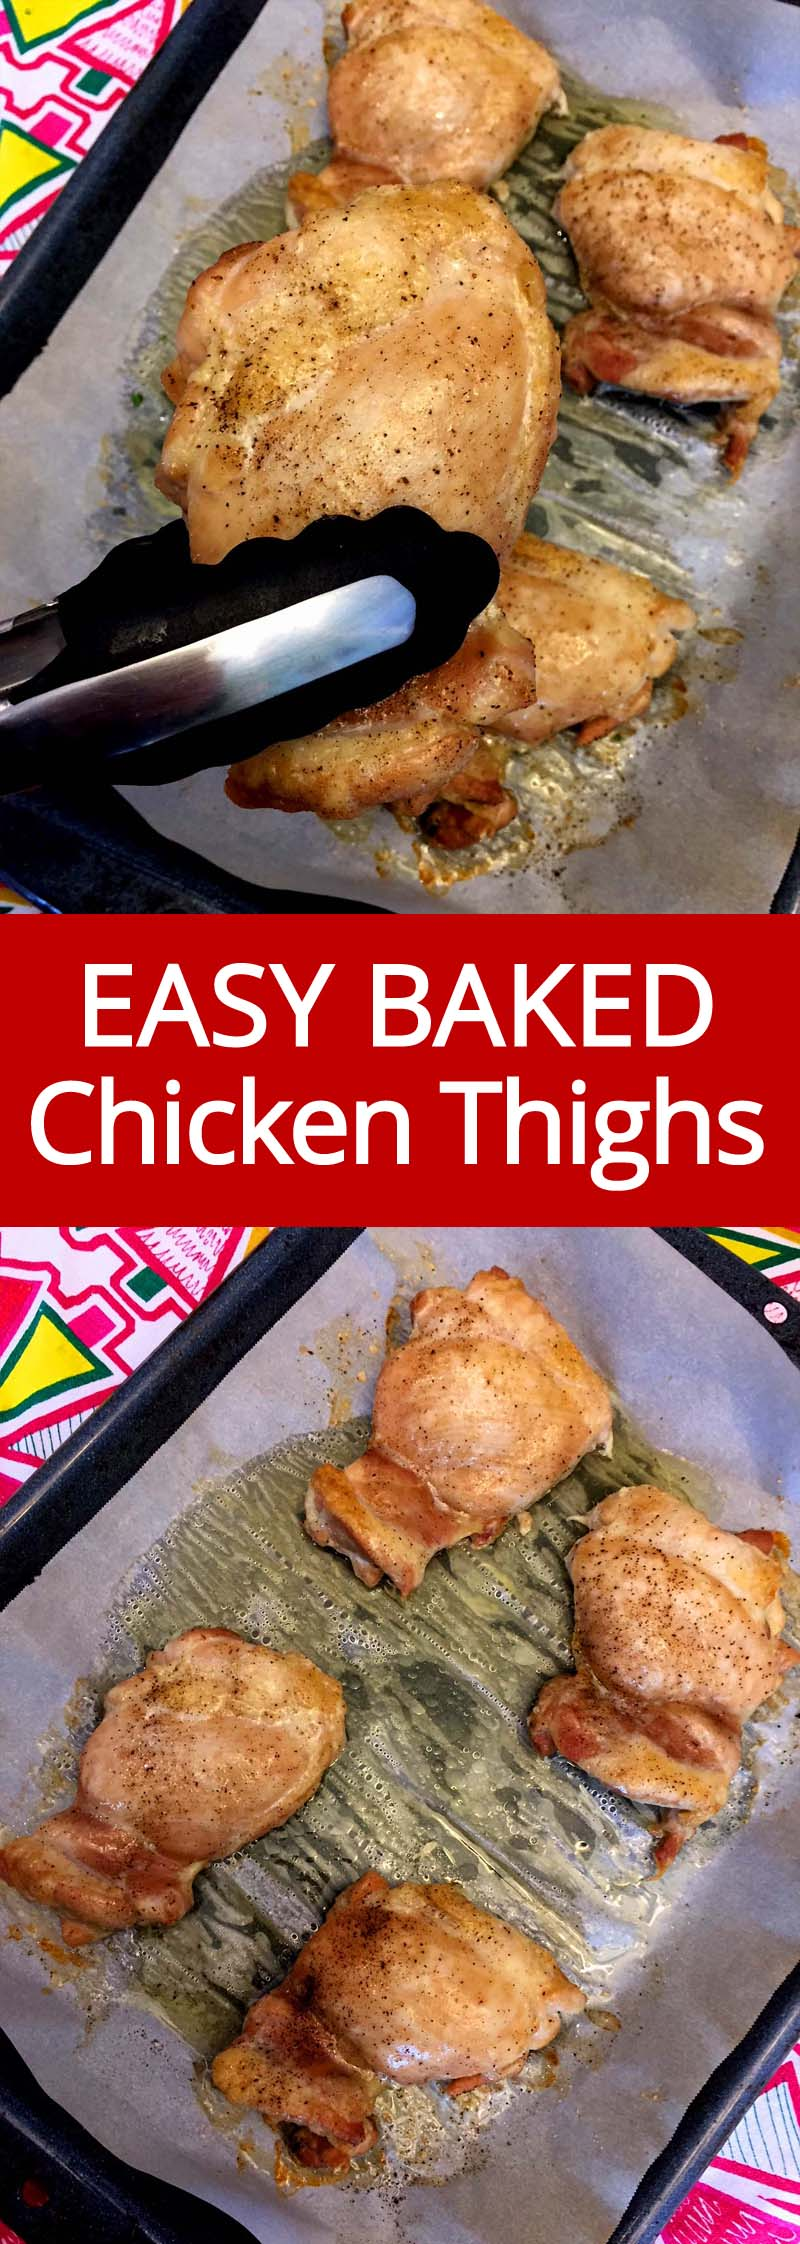 I love baked boneless skinless chicken thighs! Unlike chicken breasts, they don't dry out! They stay moist and juicy, everyone loves them! So easy to make, these chicken thighs are my go to dinner and meal prep!